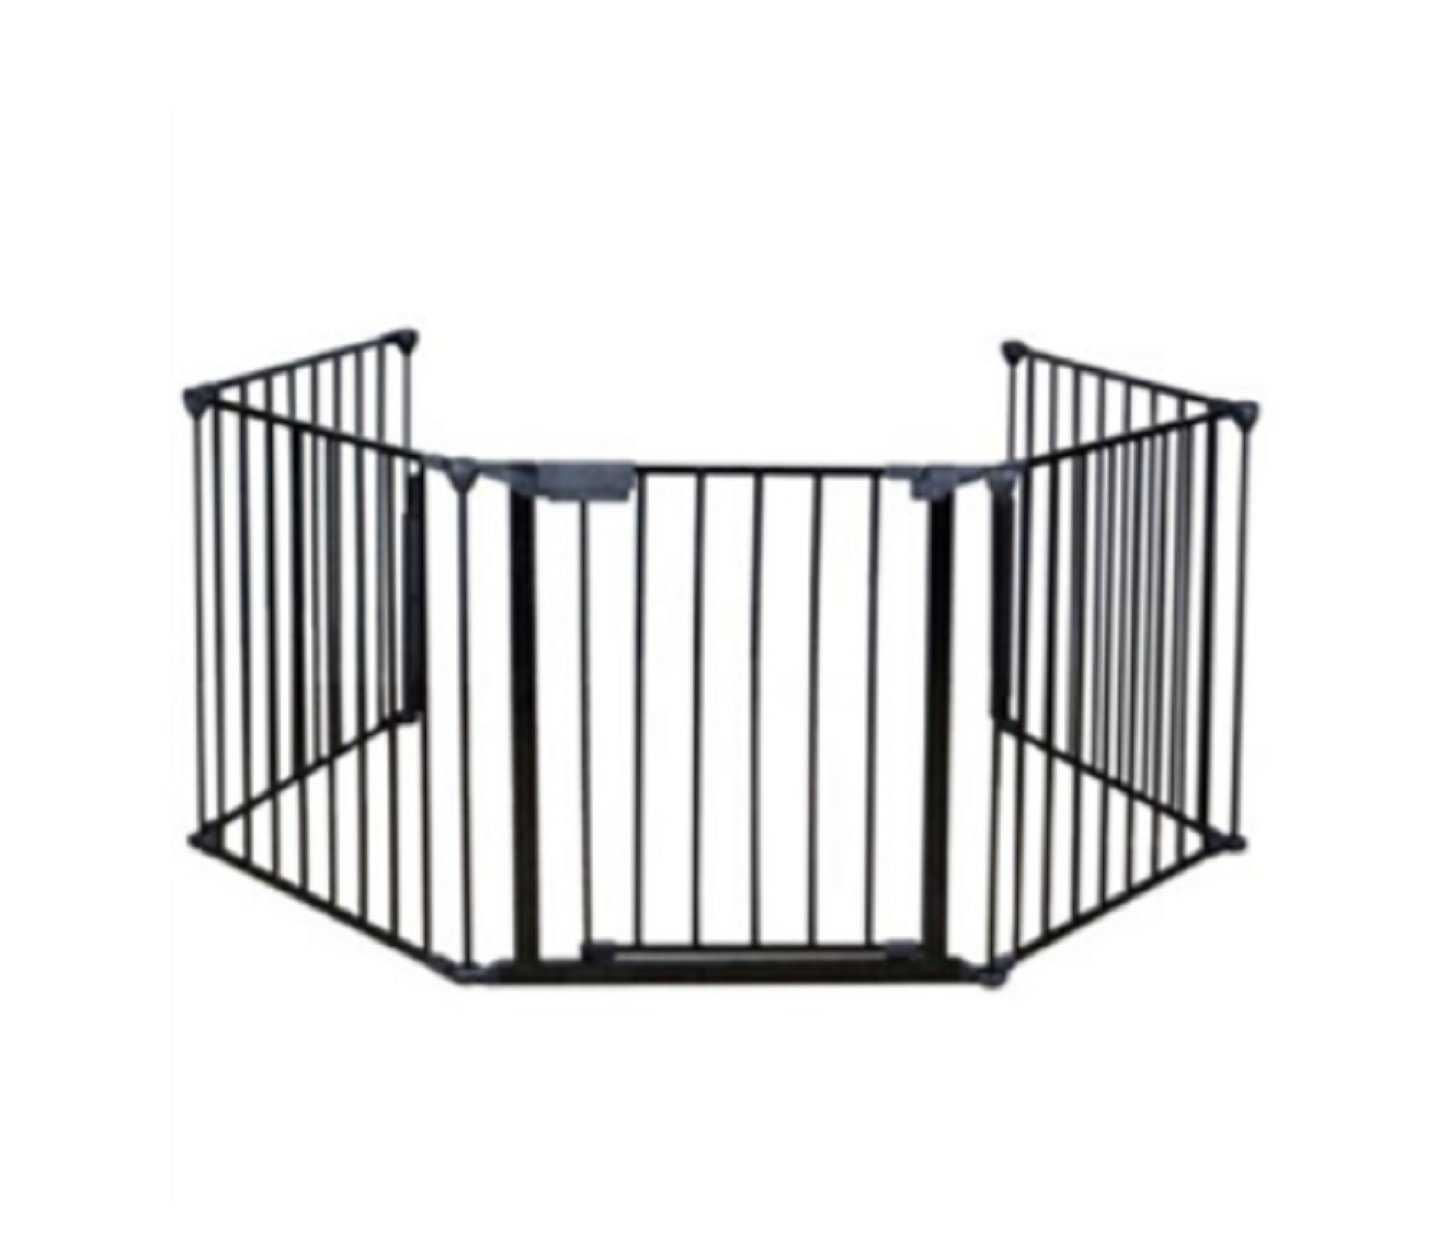 USA Premium Store Baby Safety Fence Hearth Gate BBQ Metal Fire Gate Fireplace Pet Dog Cat Fence